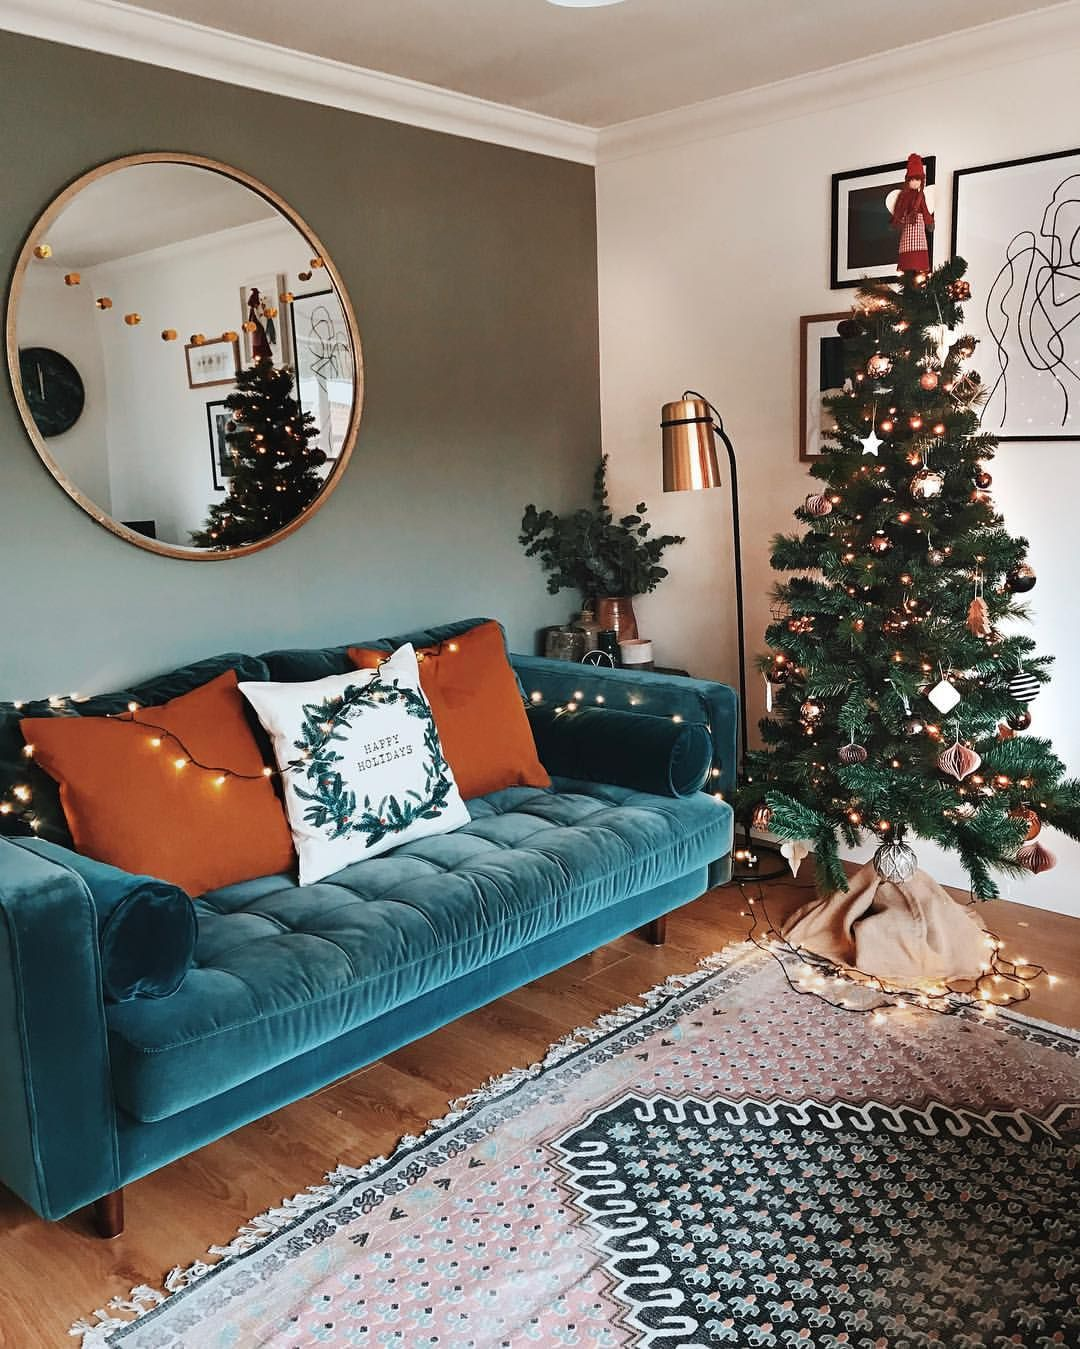 Cozy Christmas Decor With Teal Velvet Sofa And Muted Teal Walls Home Living Room Inspiration House Interior